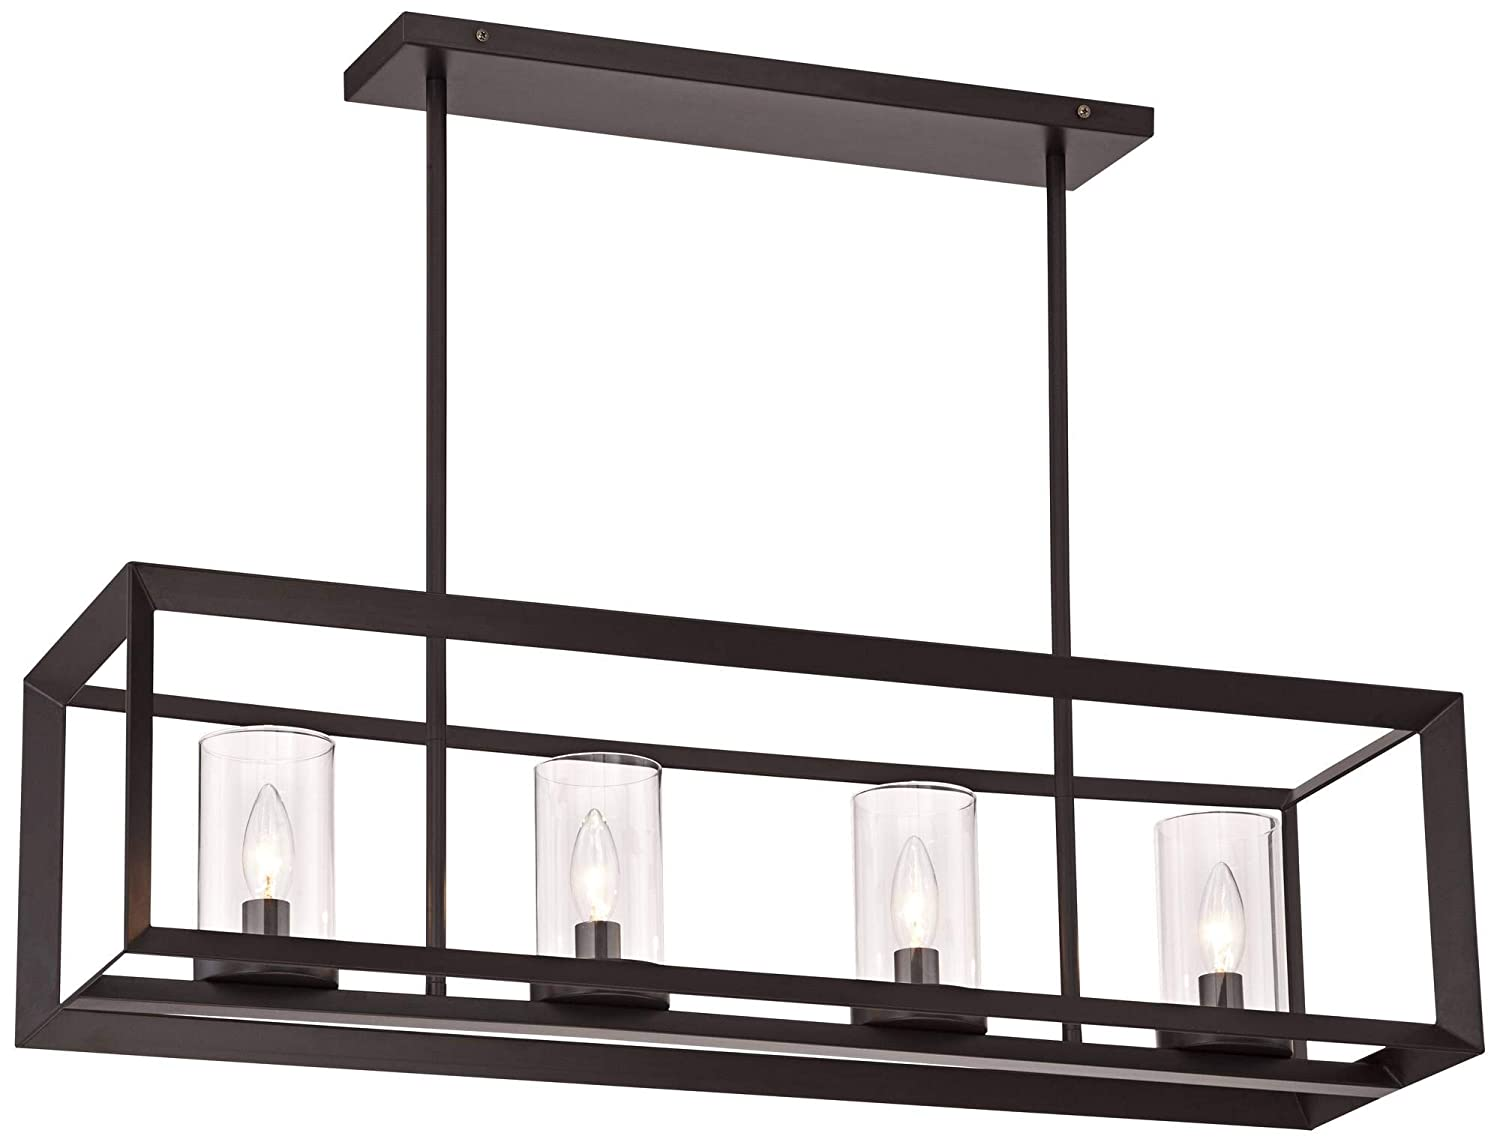 Cove Point 34 1 2 Wide Open Frame Rectangular Chandelier – Franklin Iron Works